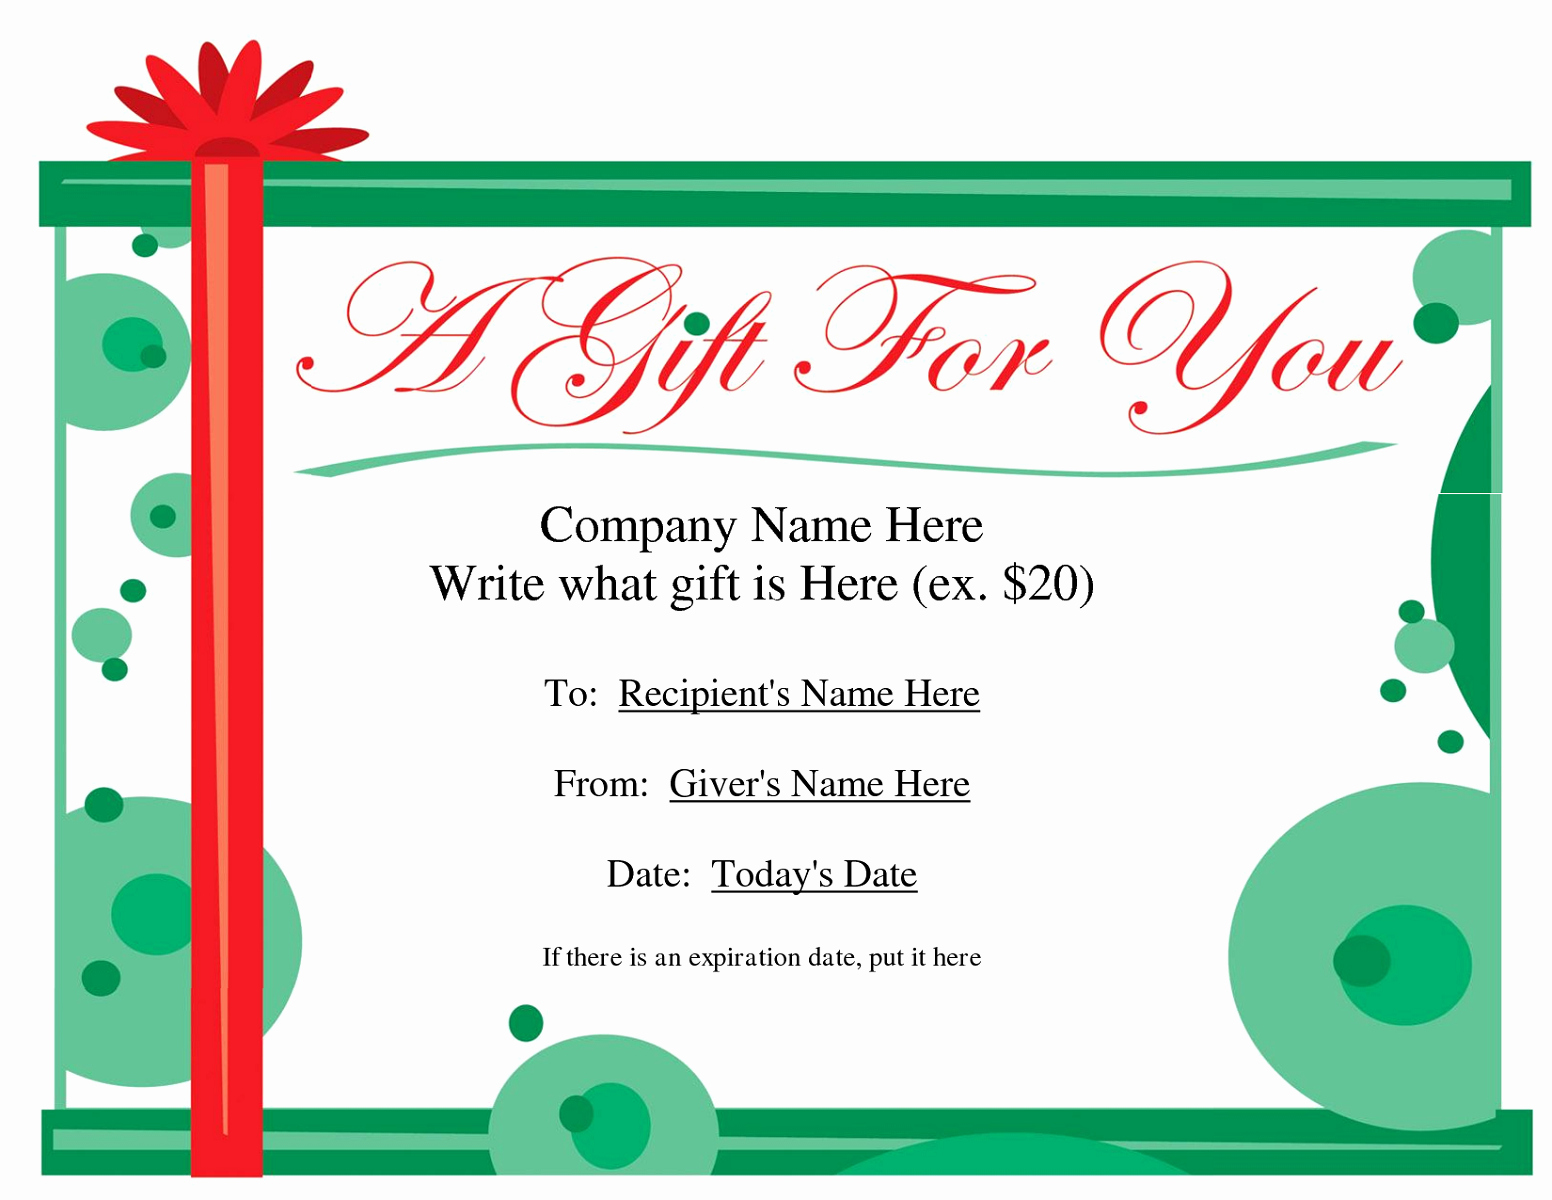 Gift Certificate Samples Free Templates Beautiful Gift Certificate Templates to Print